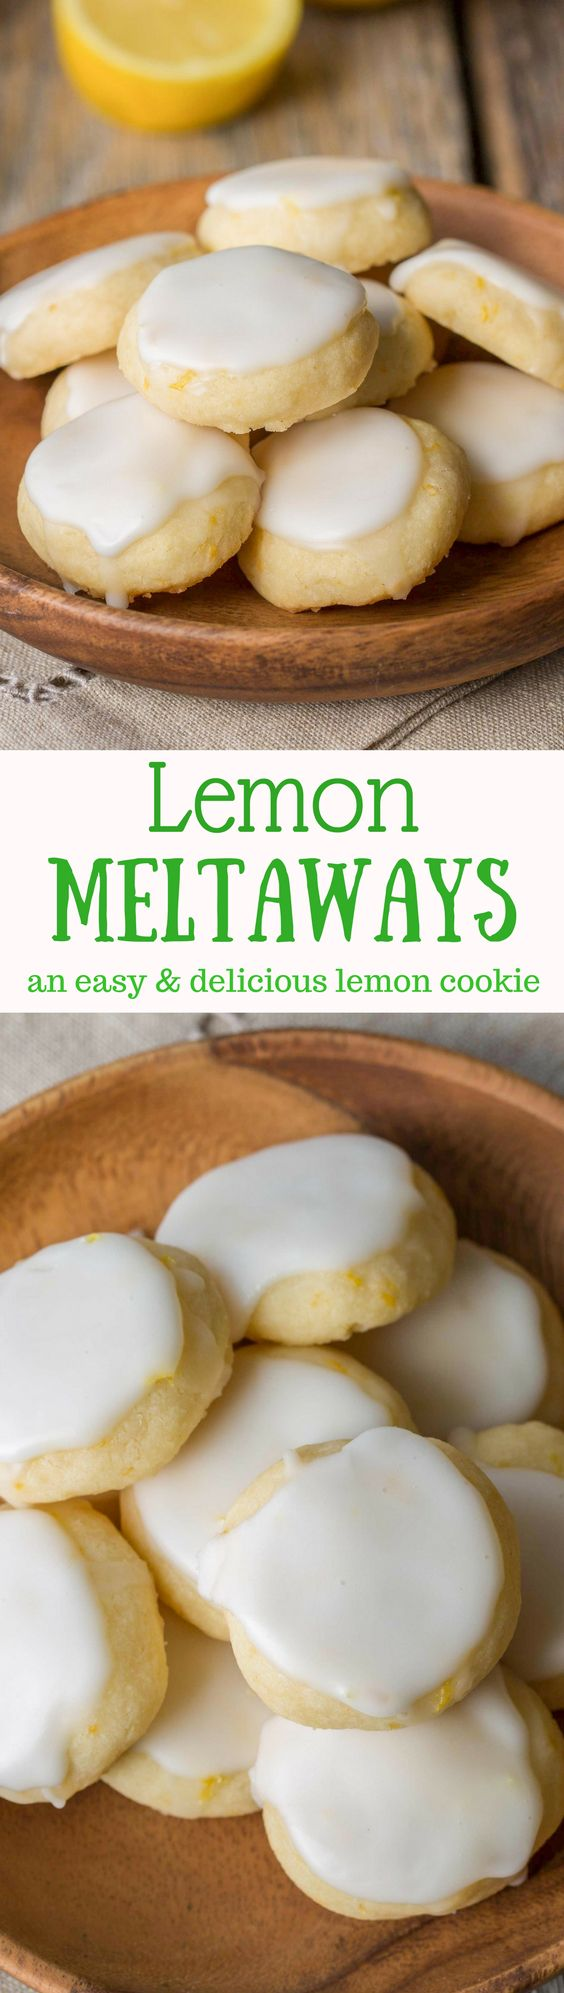 Lemon Meltaways - Light and buttery, these lemon bite-sized cookies are a real treat! Easy to make and the perfect cure for your lemon craving!